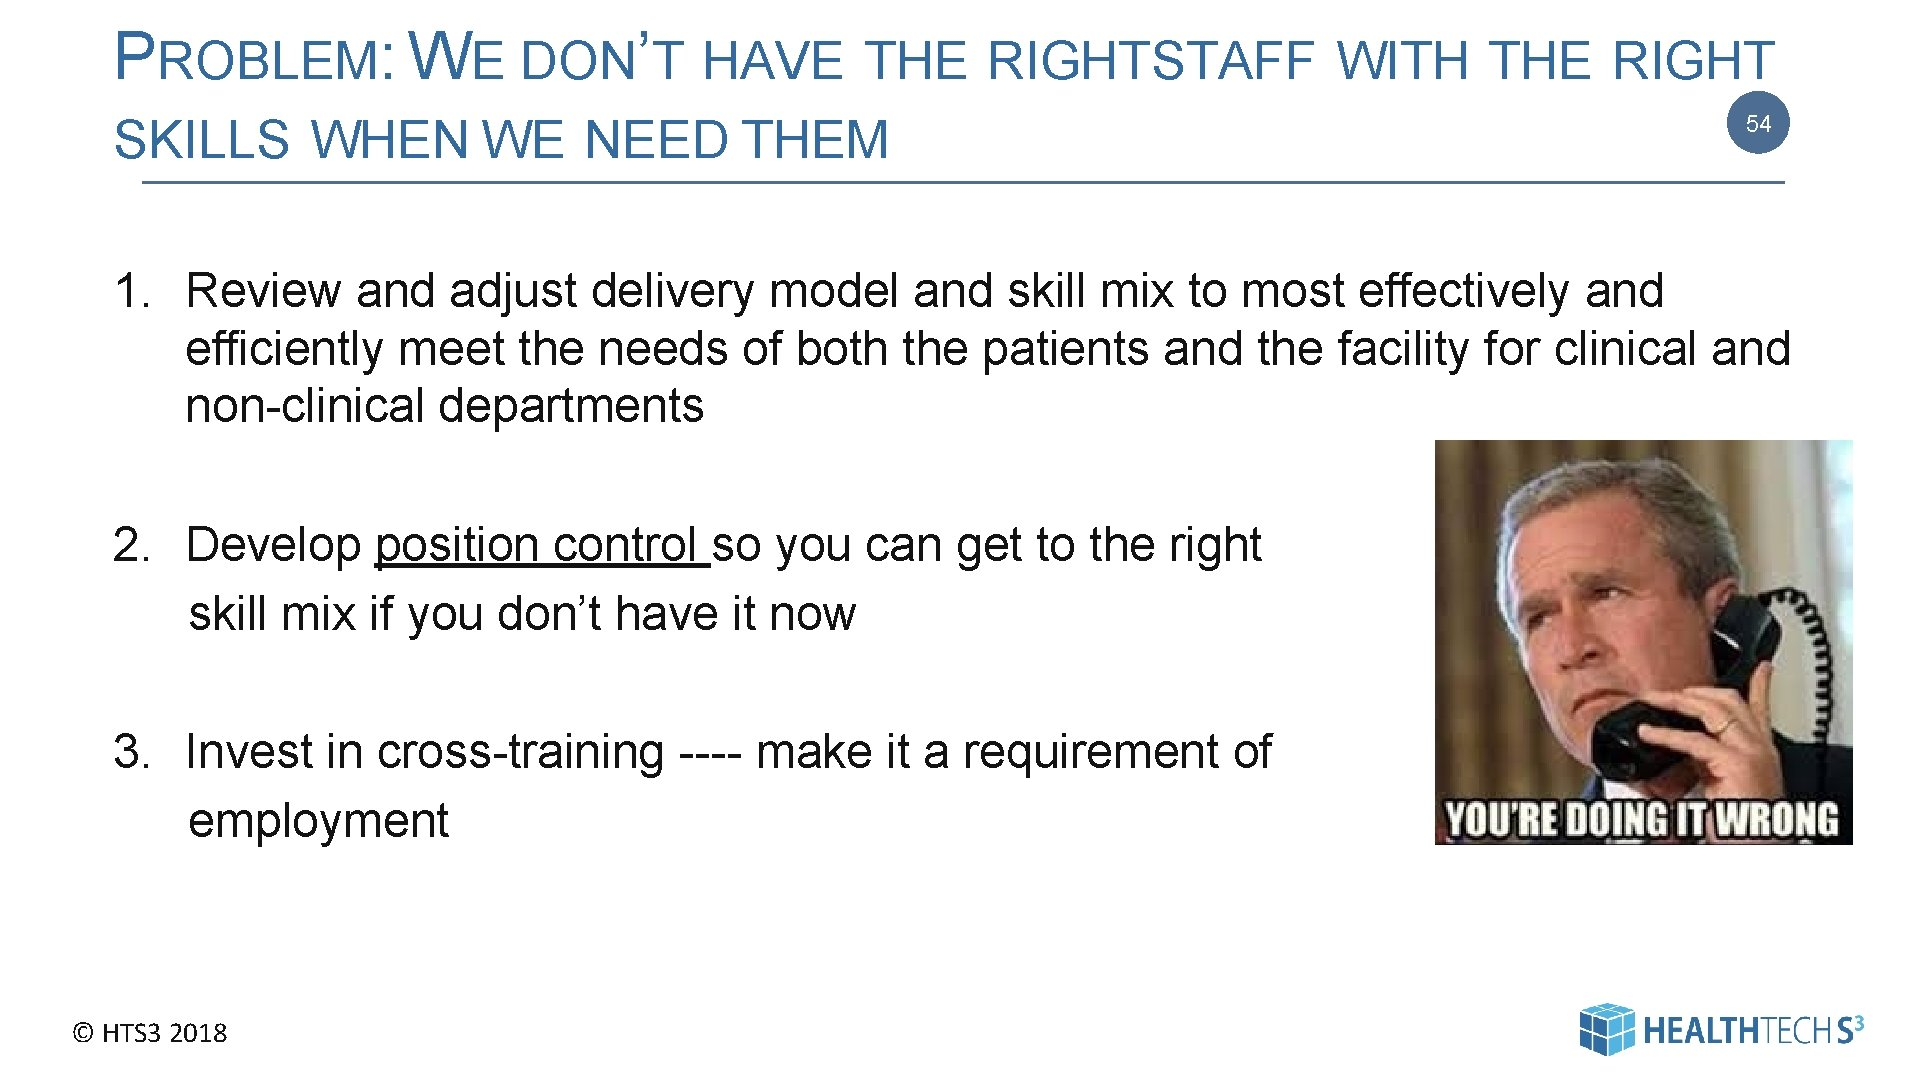 PROBLEM: WE DON'T HAVE THE RIGHT STAFF WITH THE RIGHT SKILLS WHEN WE NEED